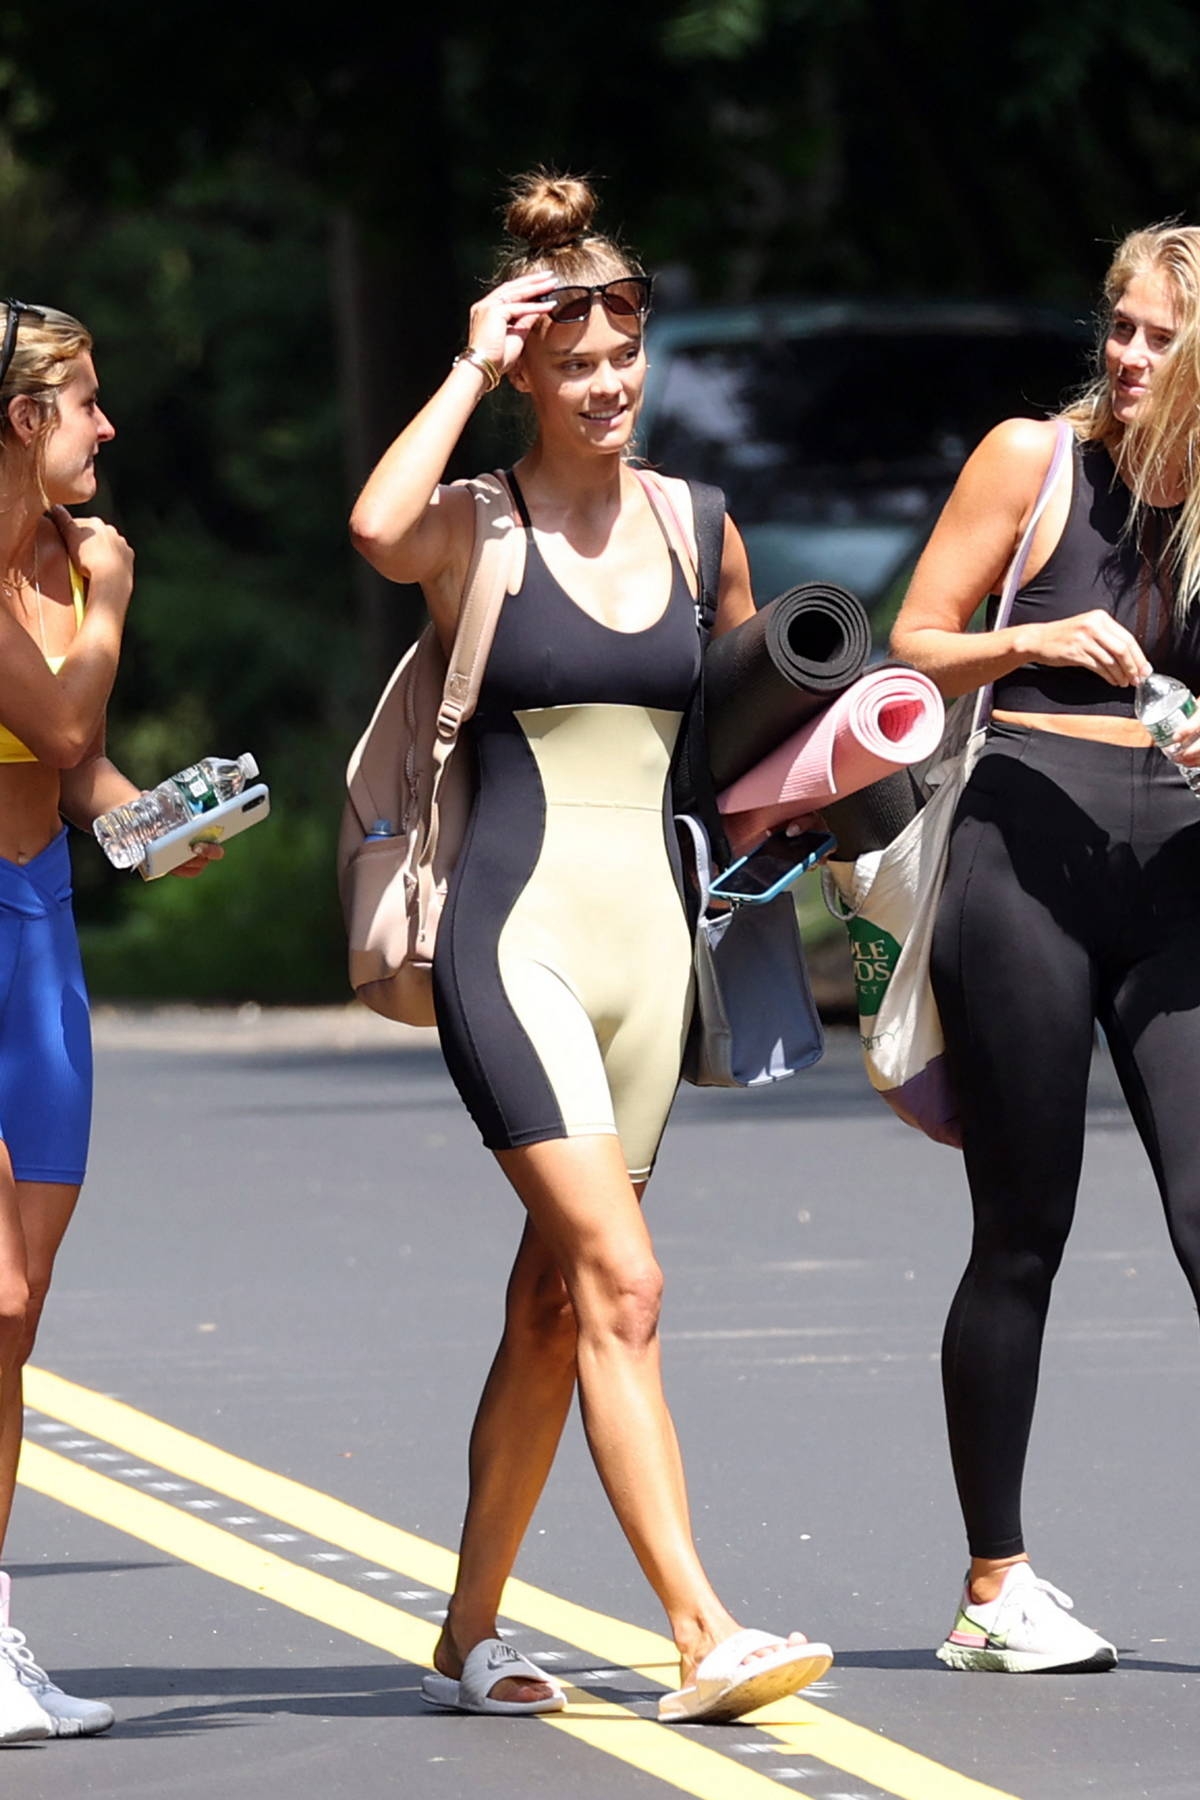 Nina Agdal sports a two-toned leotard while heading to a yoga class with friends in The Hamptons, New York